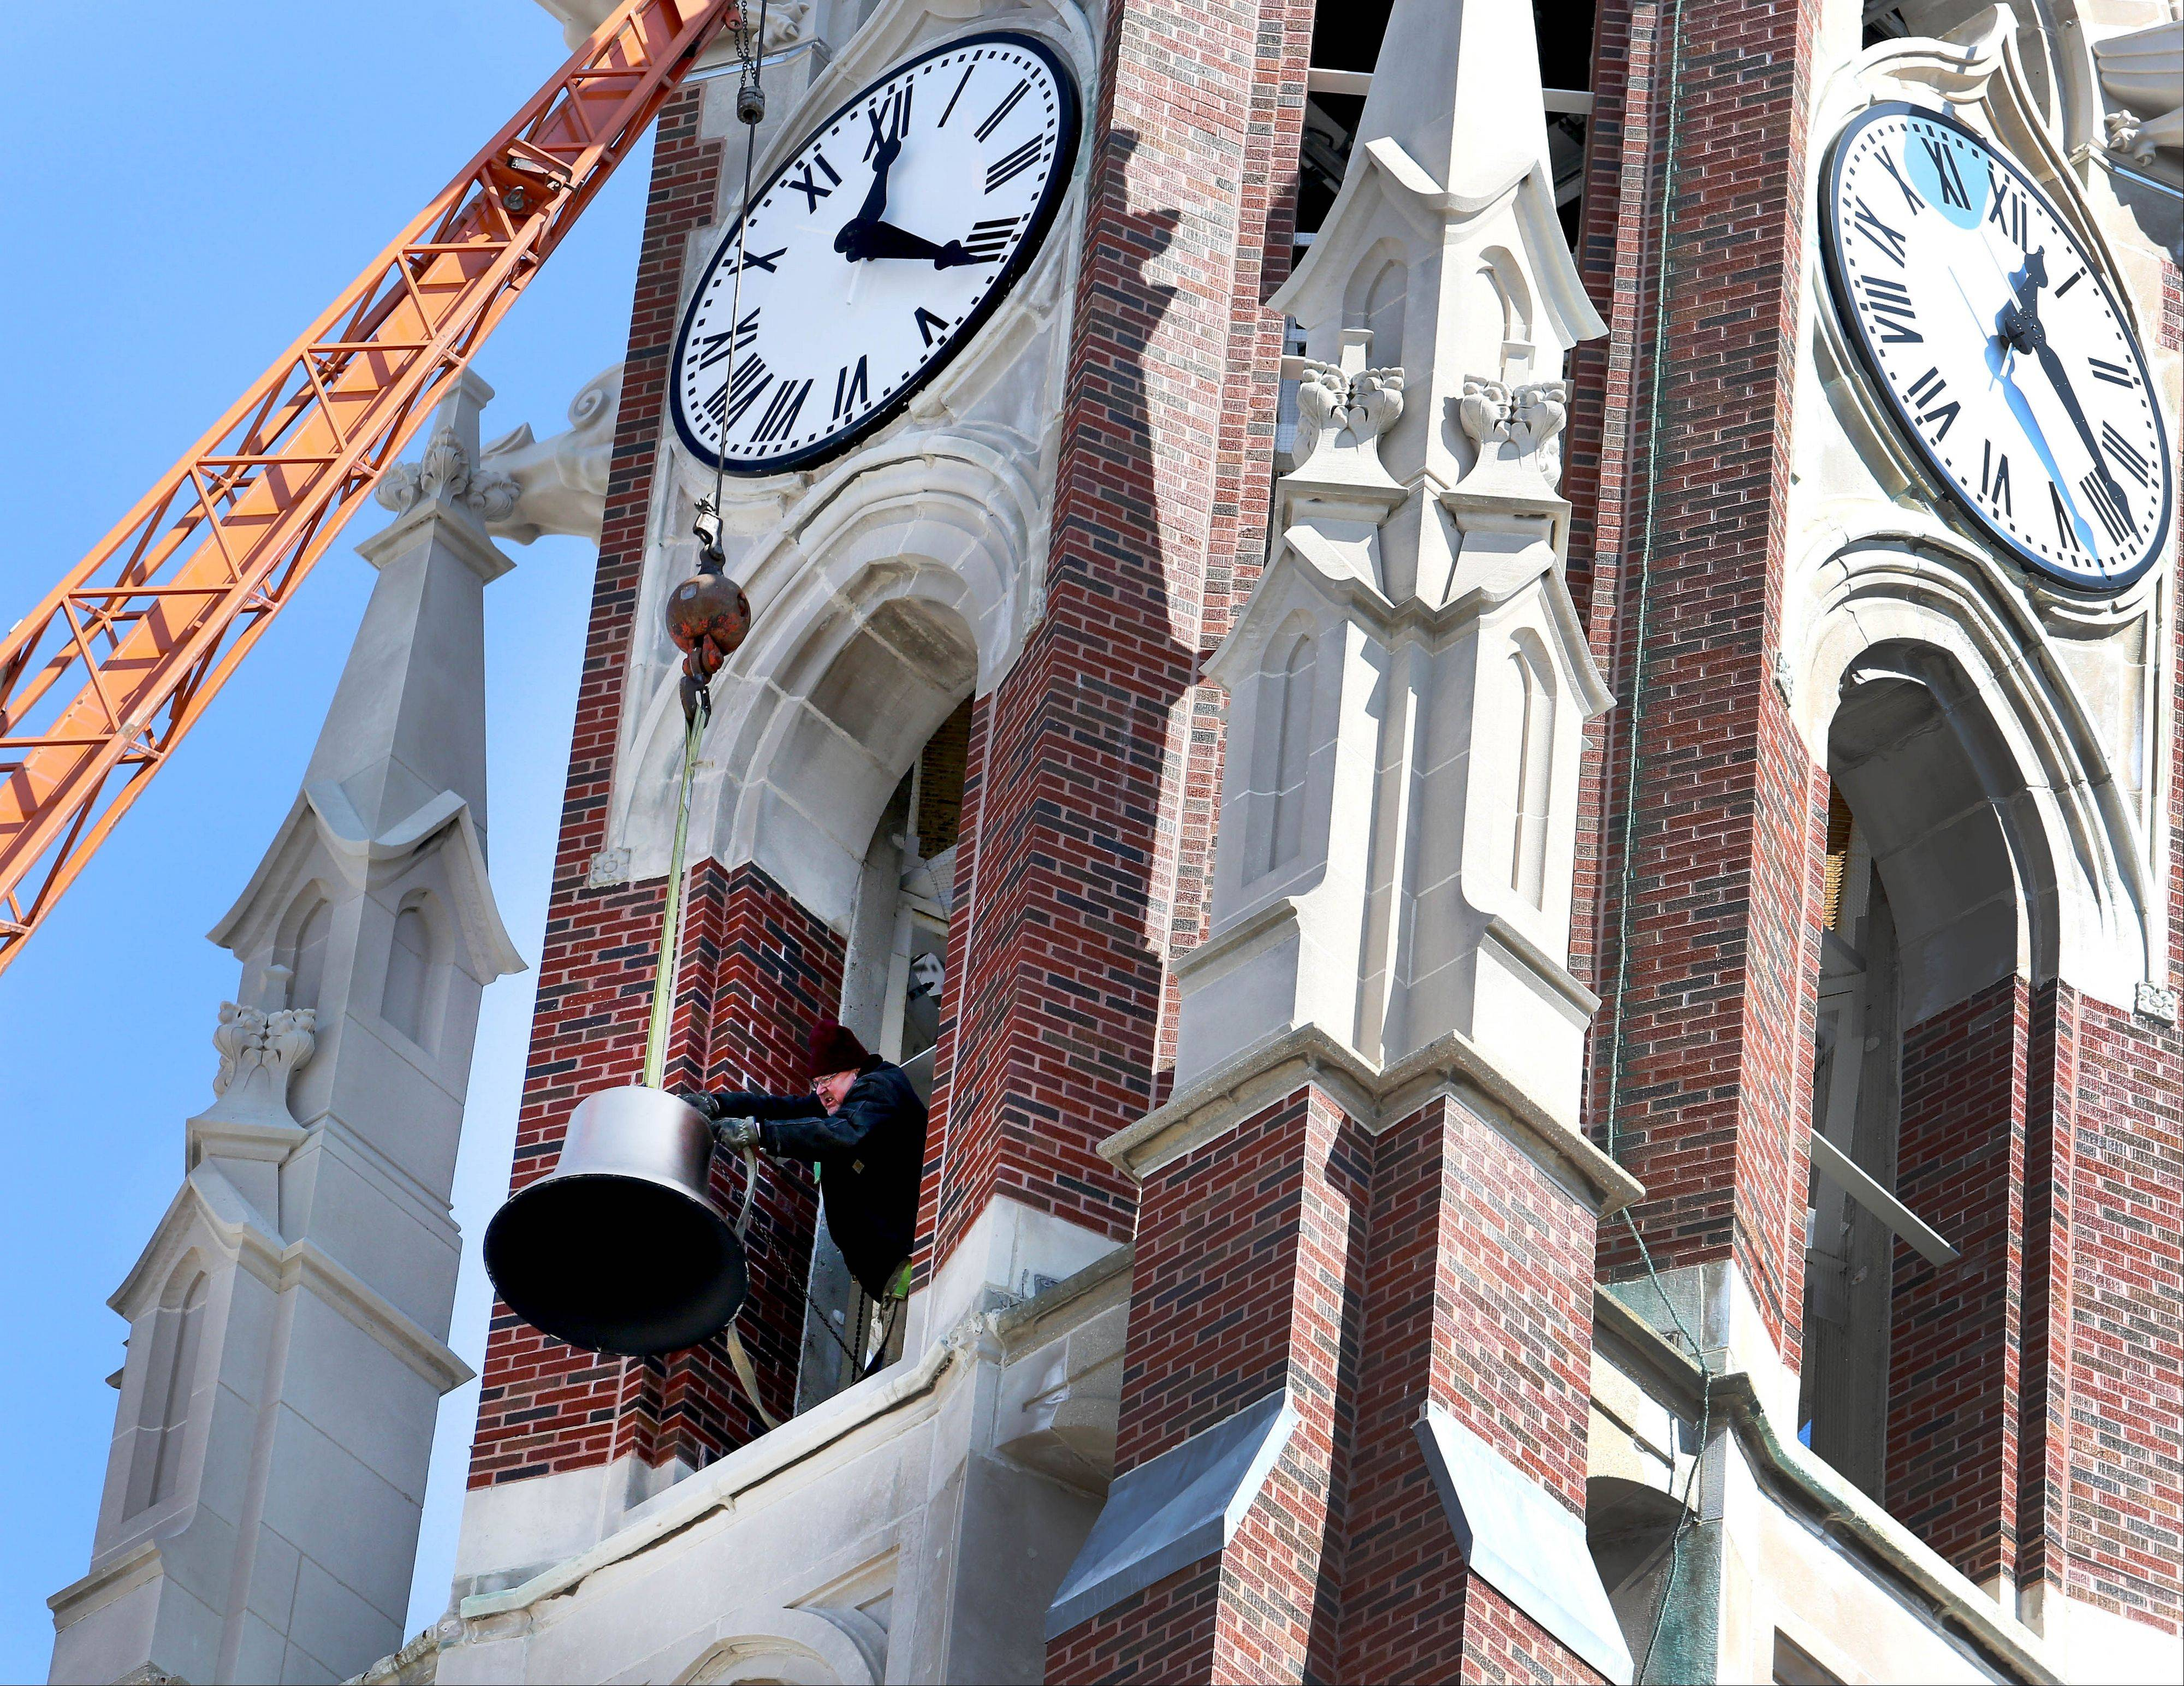 For the first time in 37 years, all of the bells at Naperville's Ss. Peter and Paul Catholic Church will ring over Easter weekend.